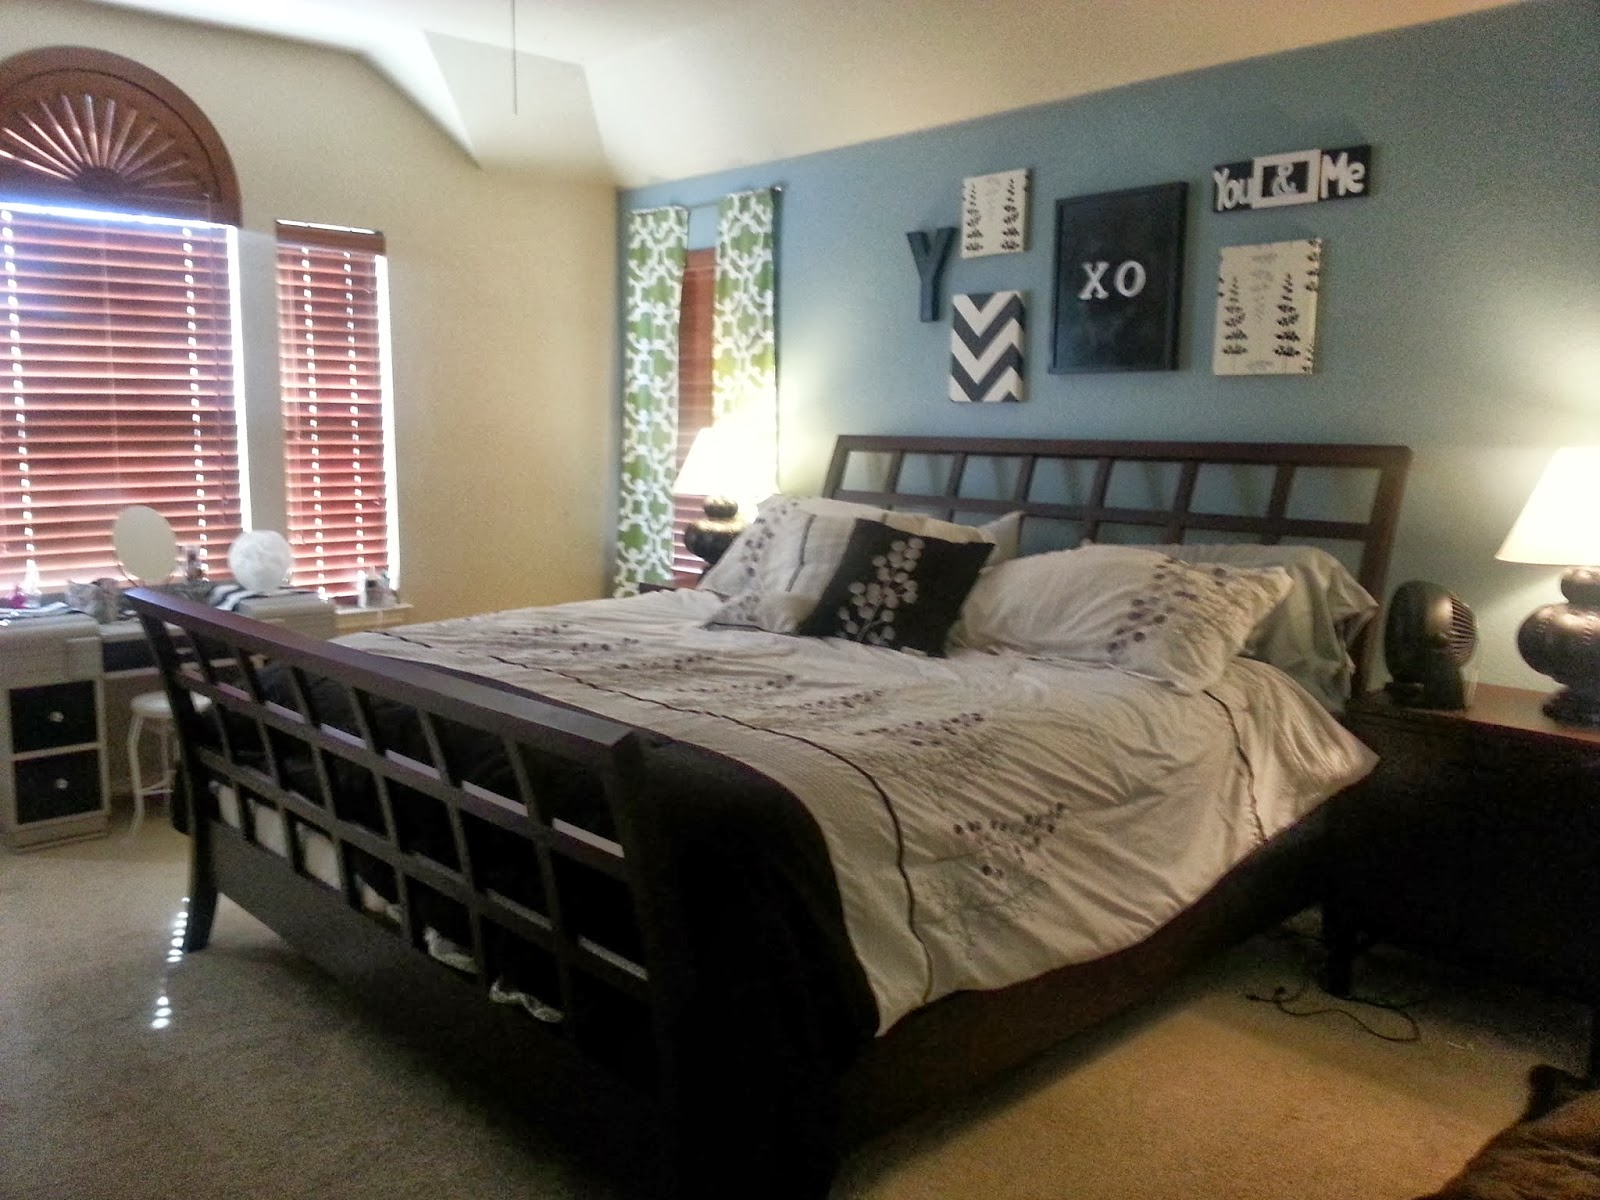 diy master bedroom decor update 11455 | 2012 08 20 16 46 31